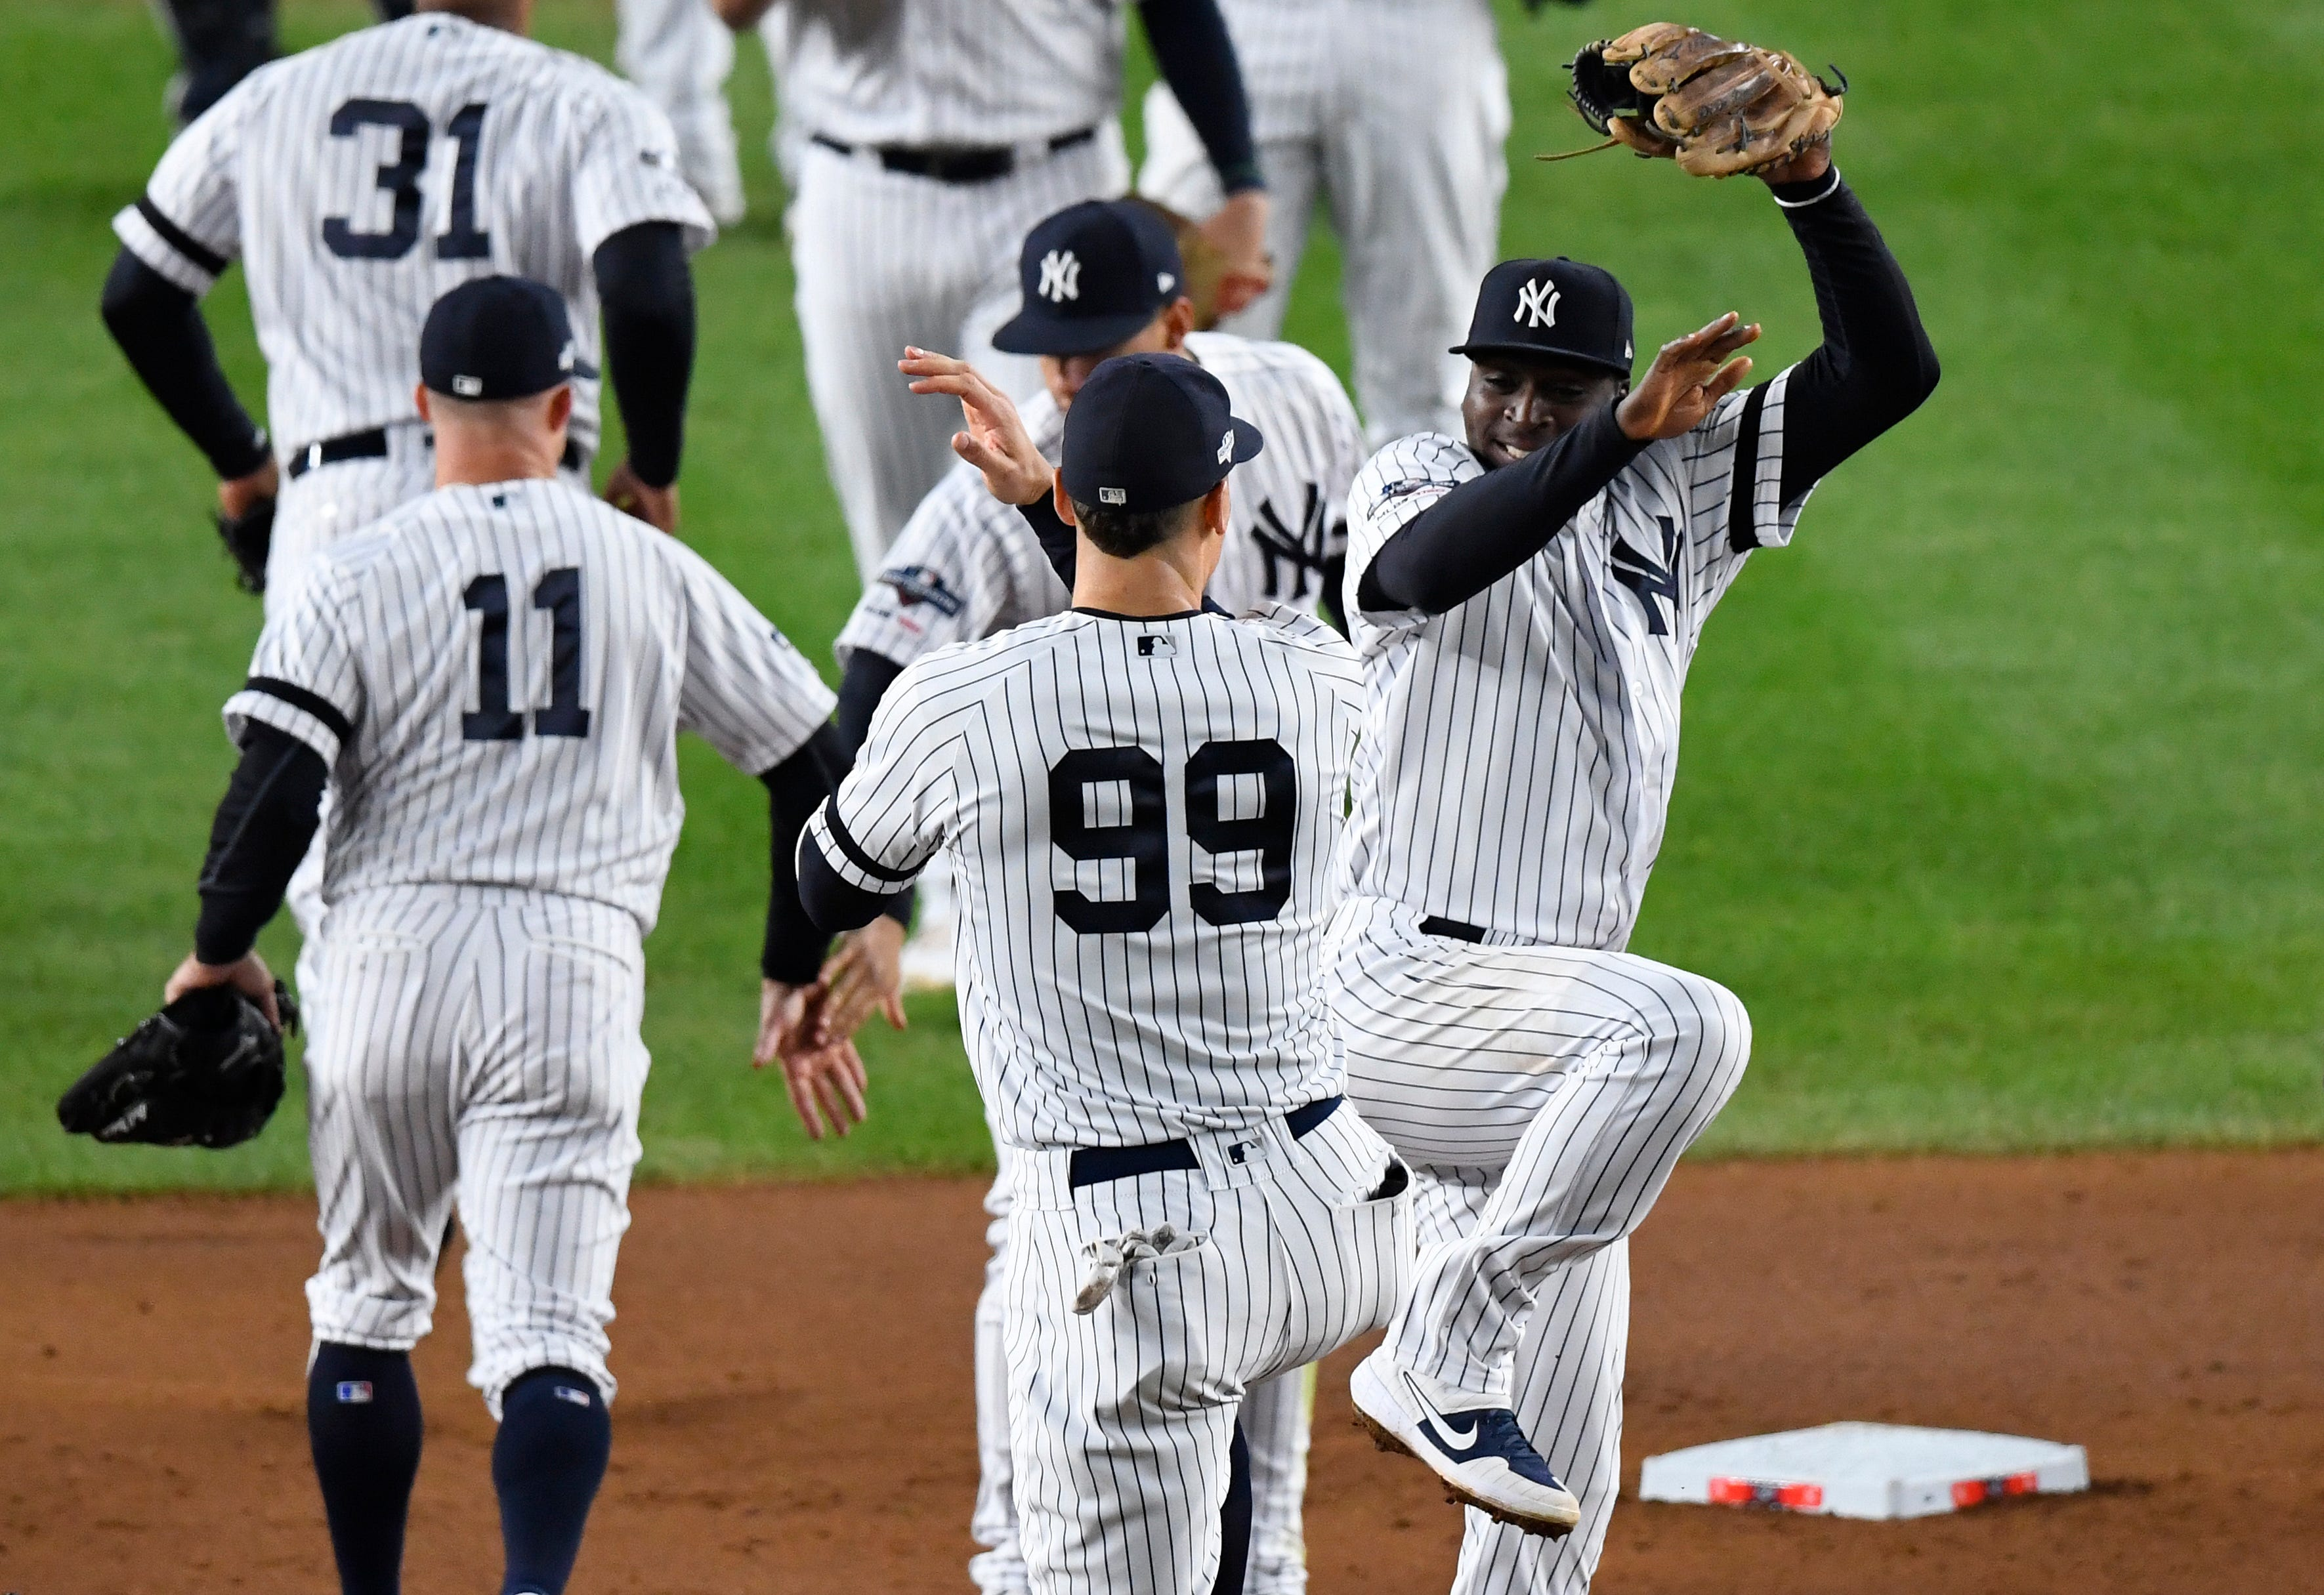 How to watch Yankees vs. Astros: MLB live stream, schedule, TV channel, start time for ALCS Game 6